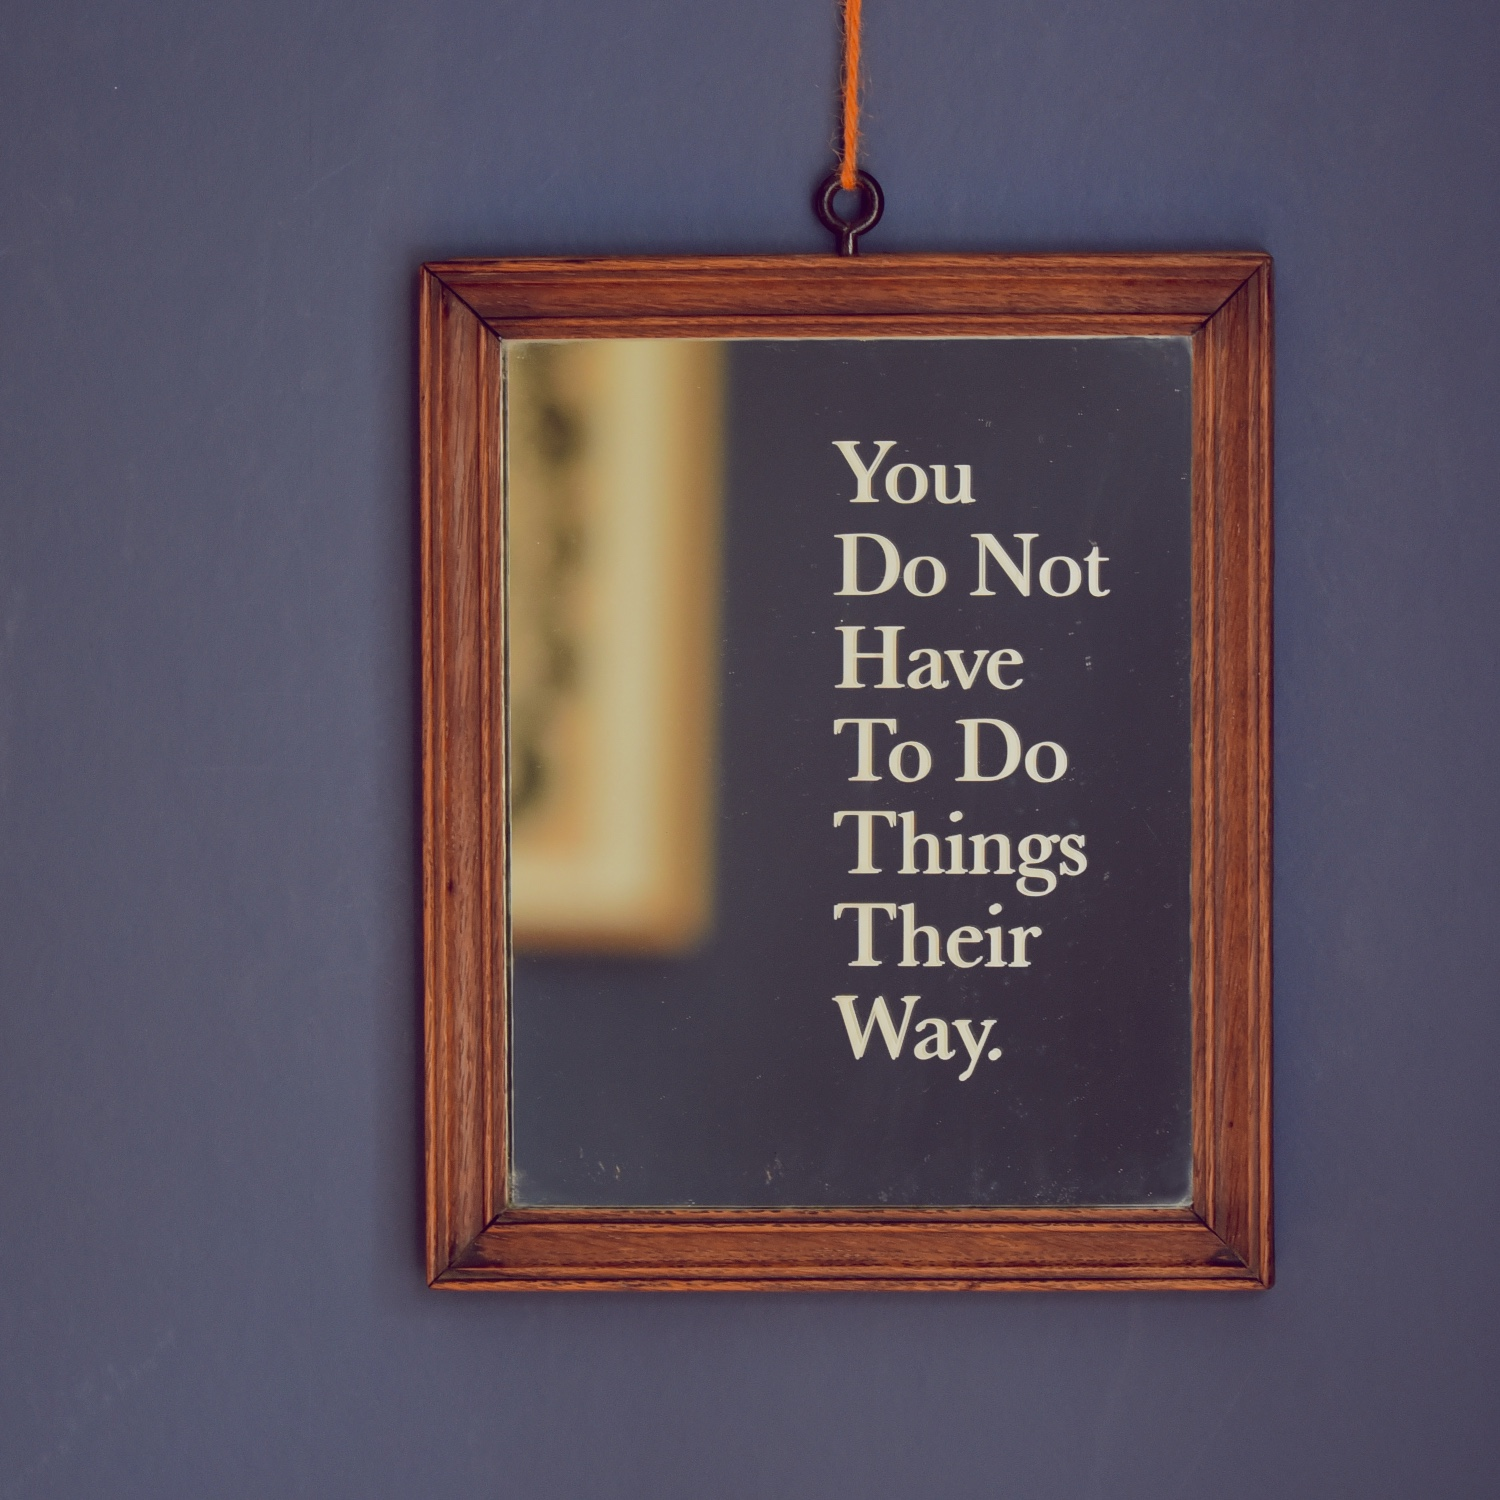 you-do-not-have-to-do-things-their-way-etched-mirror-vinegar-and-brown-paper 041.jpg